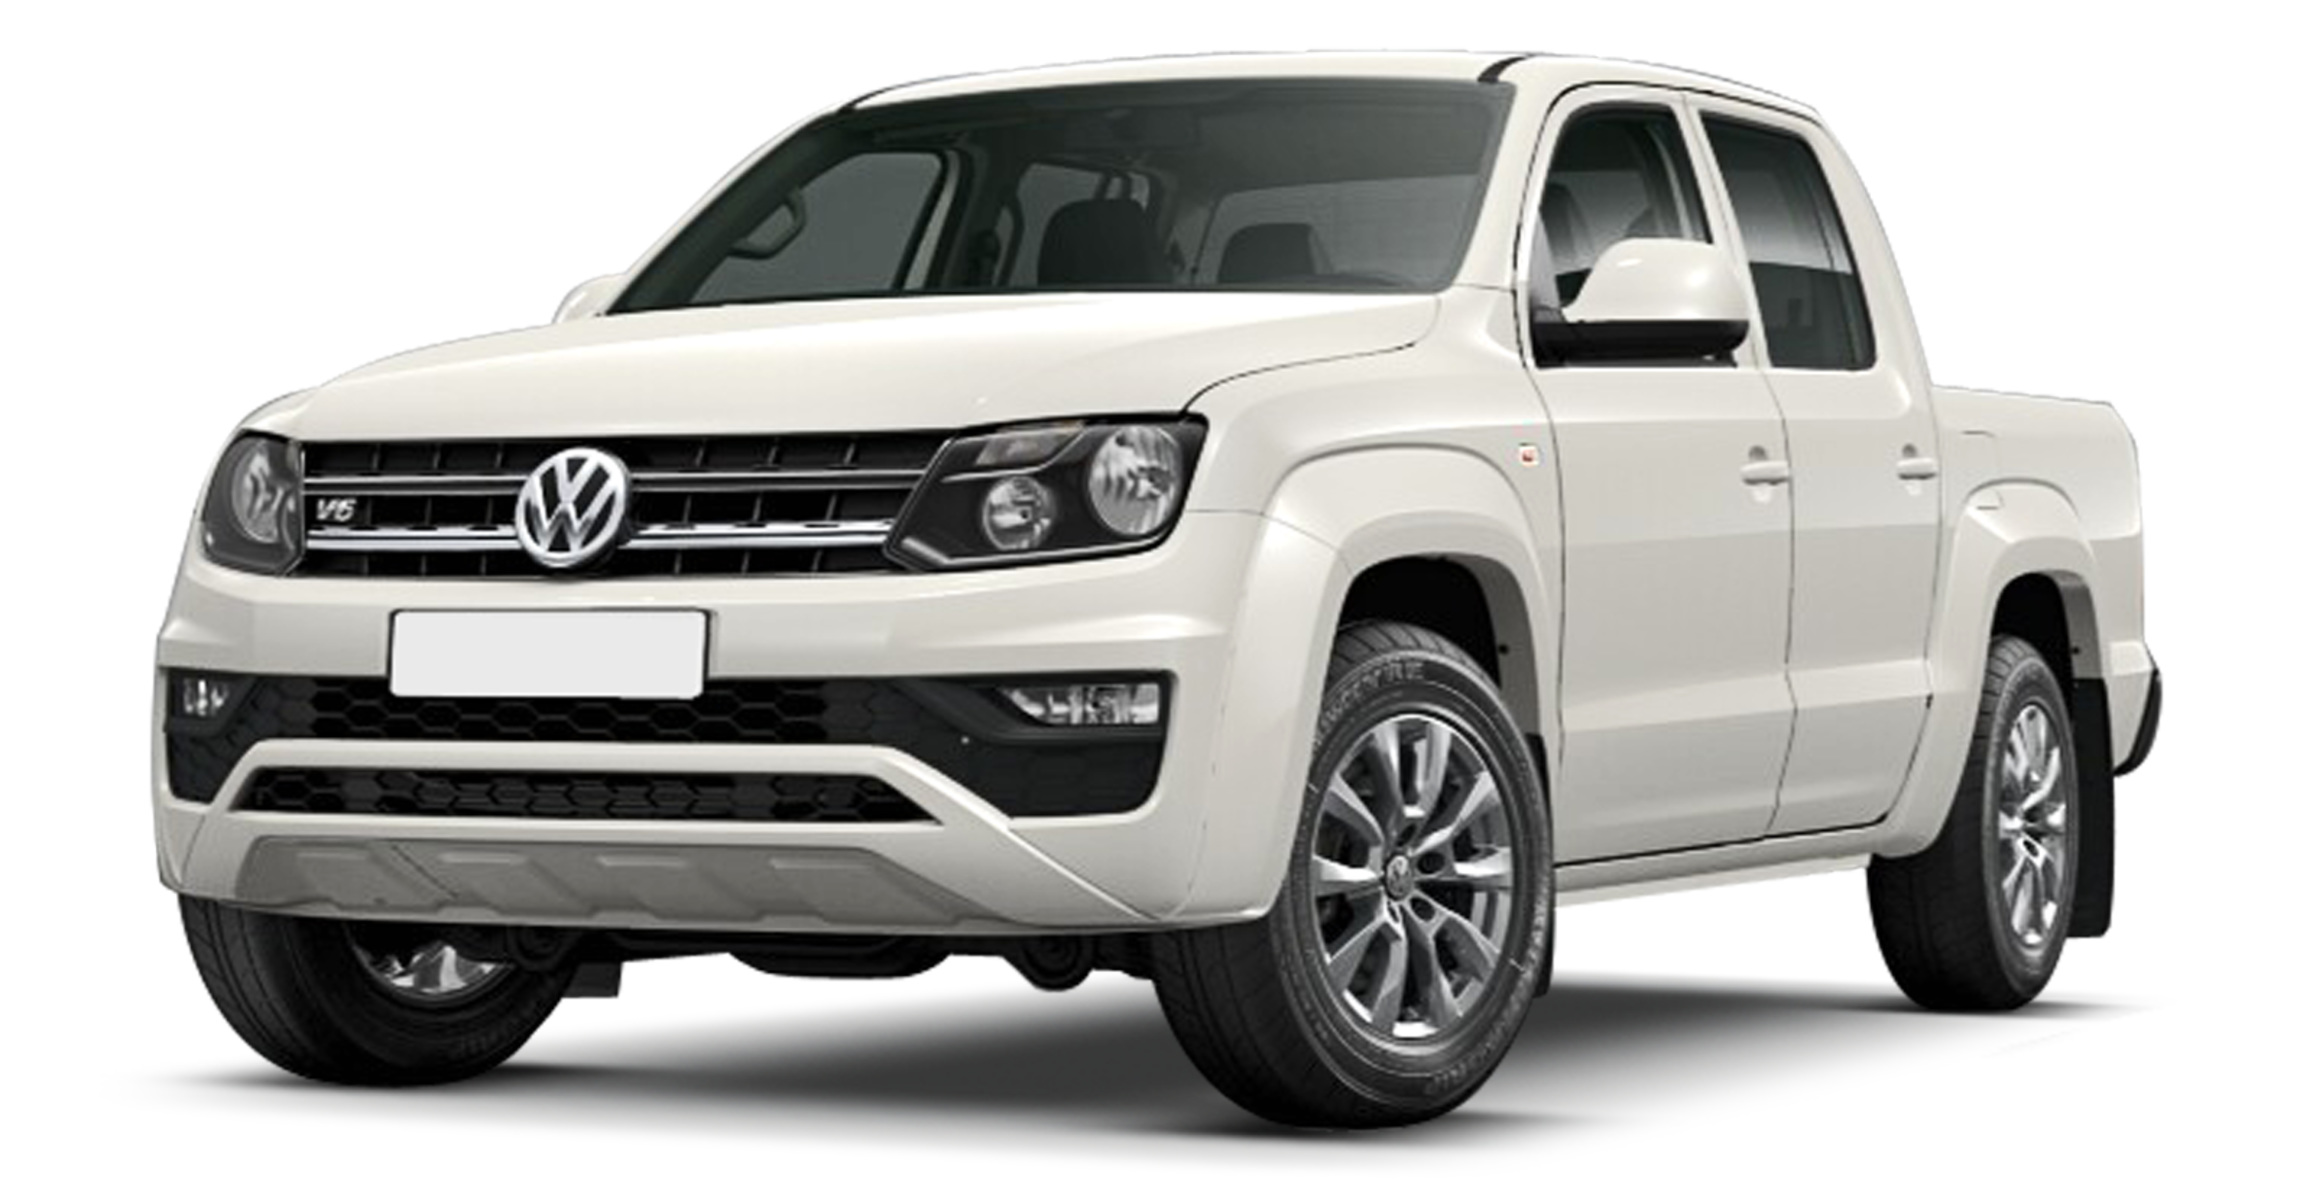 listino volkswagen amarok prezzo scheda tecnica. Black Bedroom Furniture Sets. Home Design Ideas